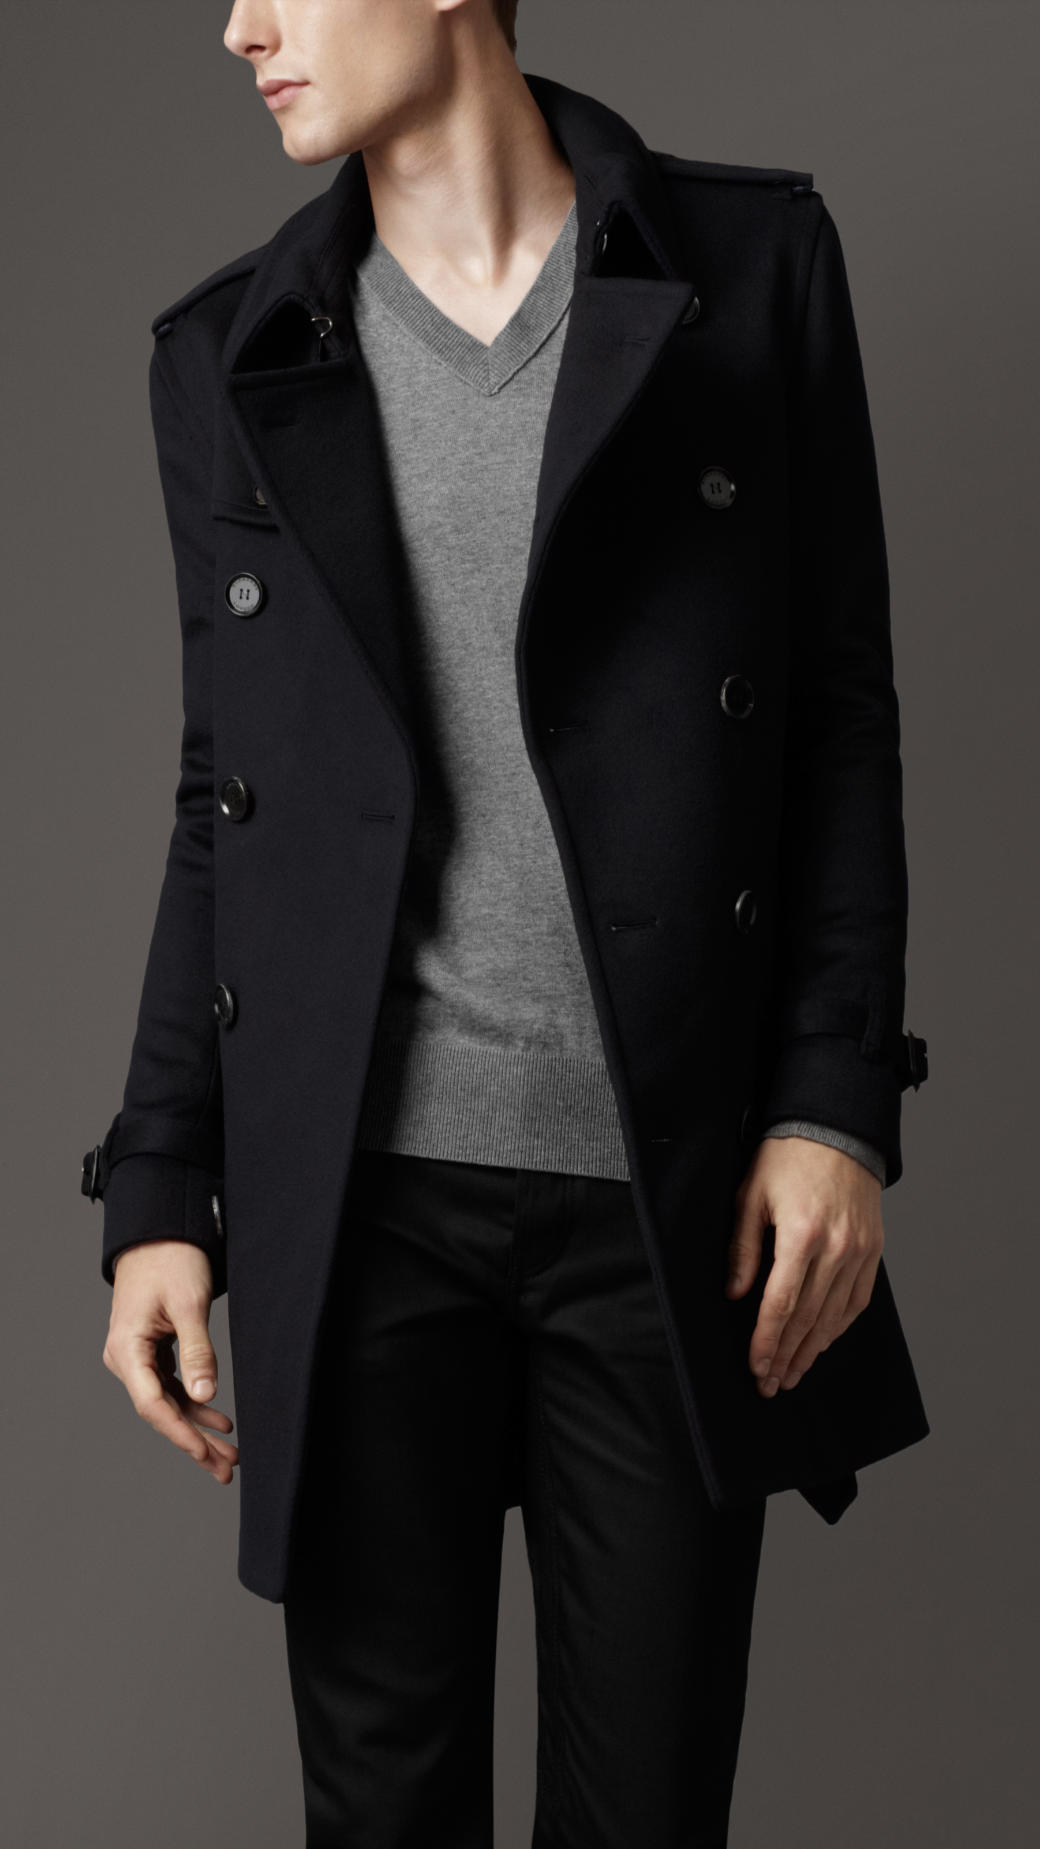 Hot New Fashion Slim Fit Men Casual Trench Coat Mens Long Winter Coats Mens Man Wool UK Style Outwear Overcoat Outerwear Find Similar US $ - / Piece.